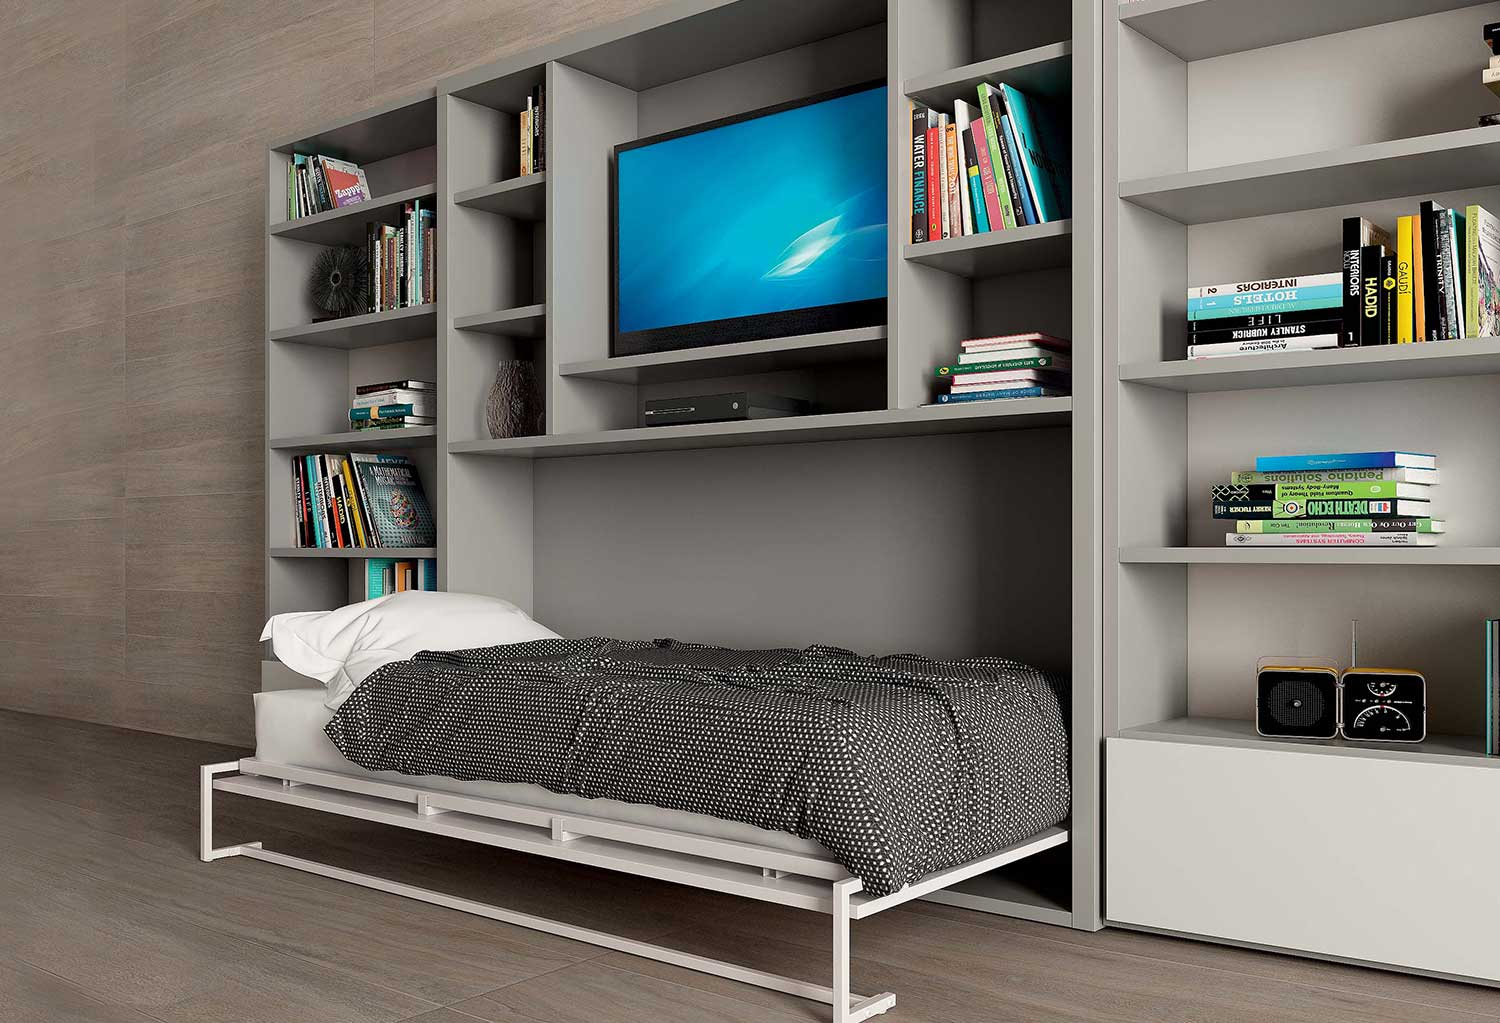 Nikai modern murphy bed with tv unit clever it for Mobile con letto a scomparsa ikea